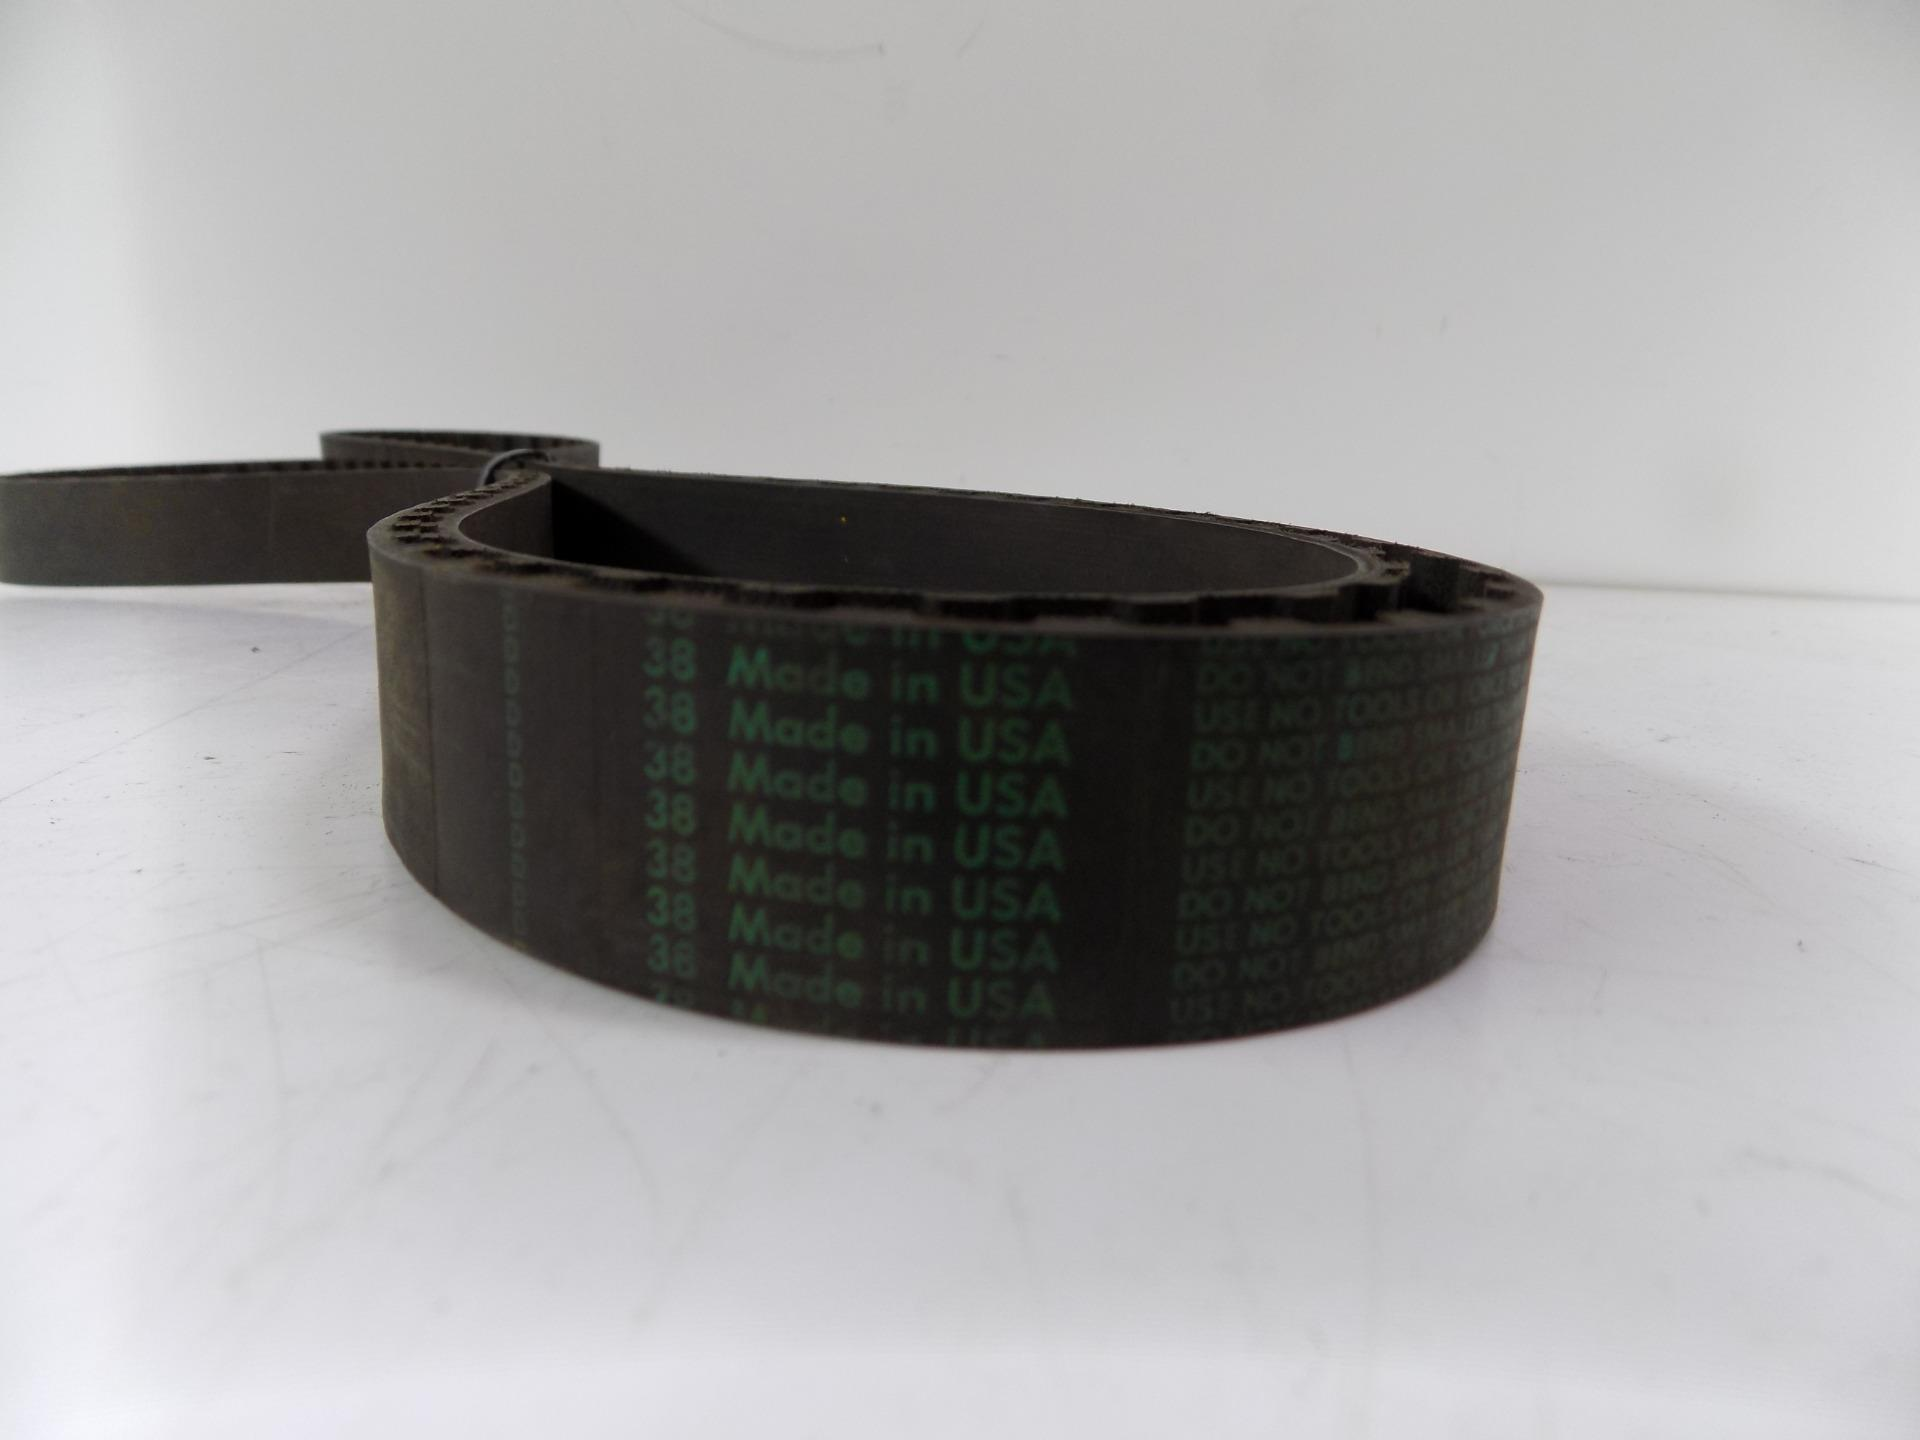 Browning Gearbelt Timing Belt 750 H 100 Nnb 272459385052 C1926 Pulley Right Click Or Long Press Open Image